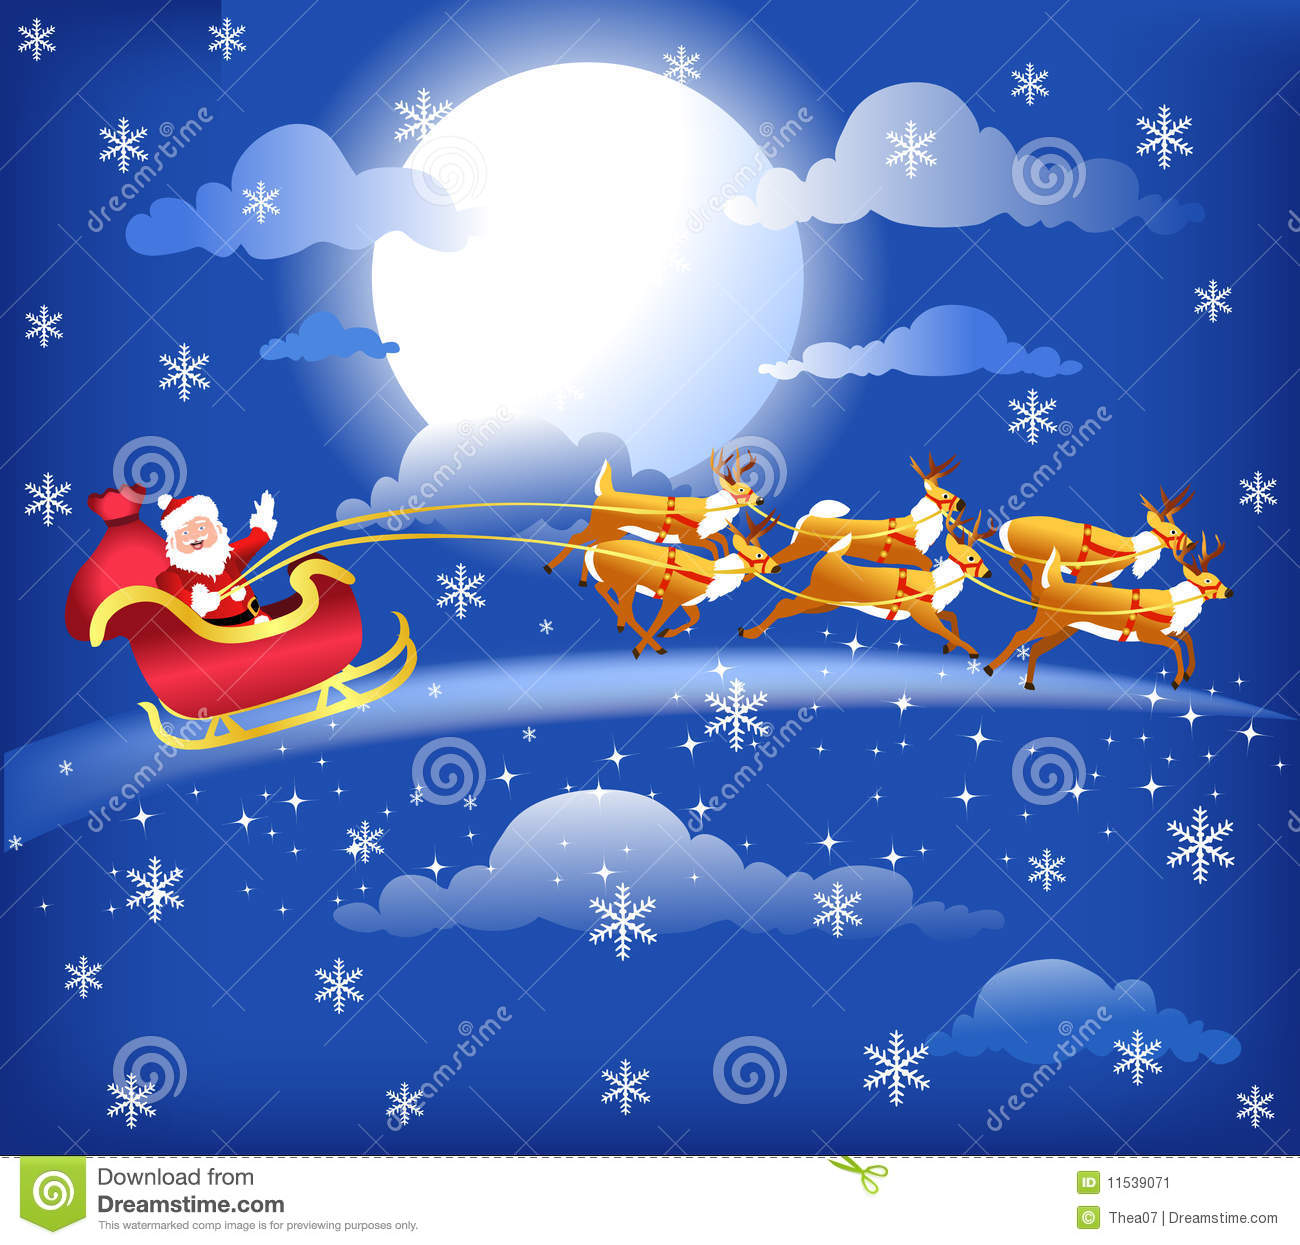 Cute Notepad Wallpaper Santa In His Sleigh With His Reindeer Stock Image Image